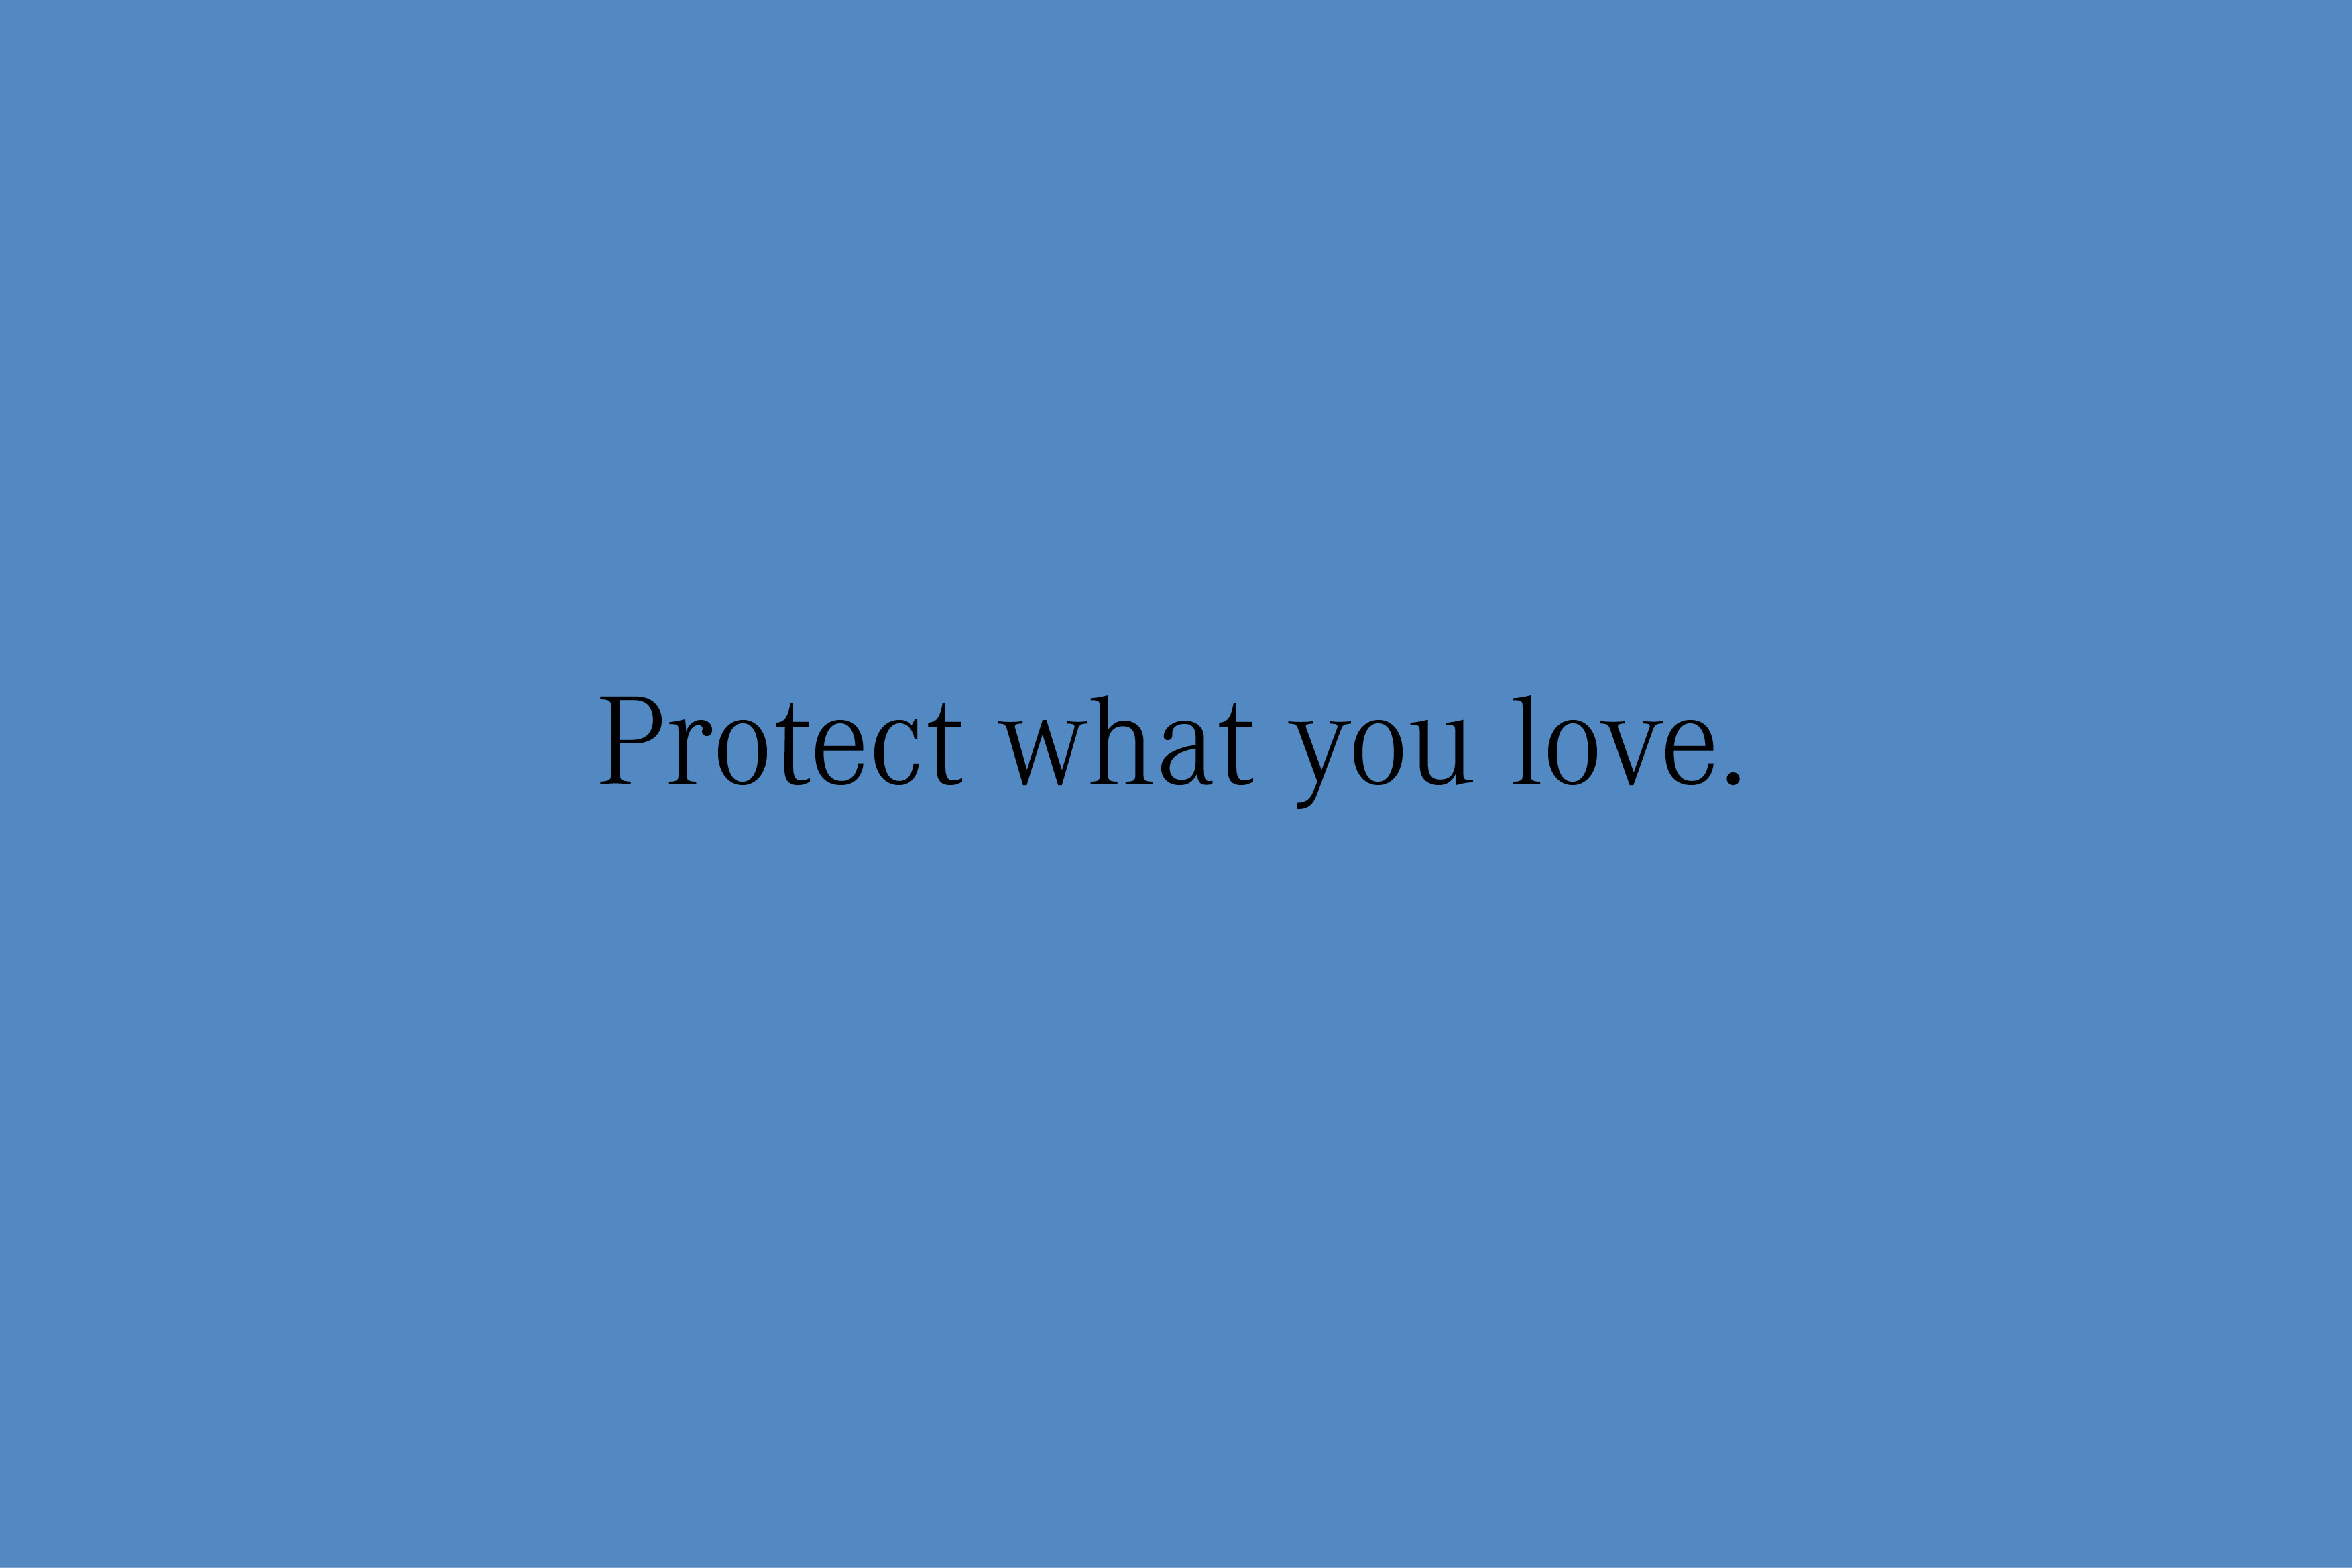 YVONNE RUNDIO BIRU BIRU Protect what you love